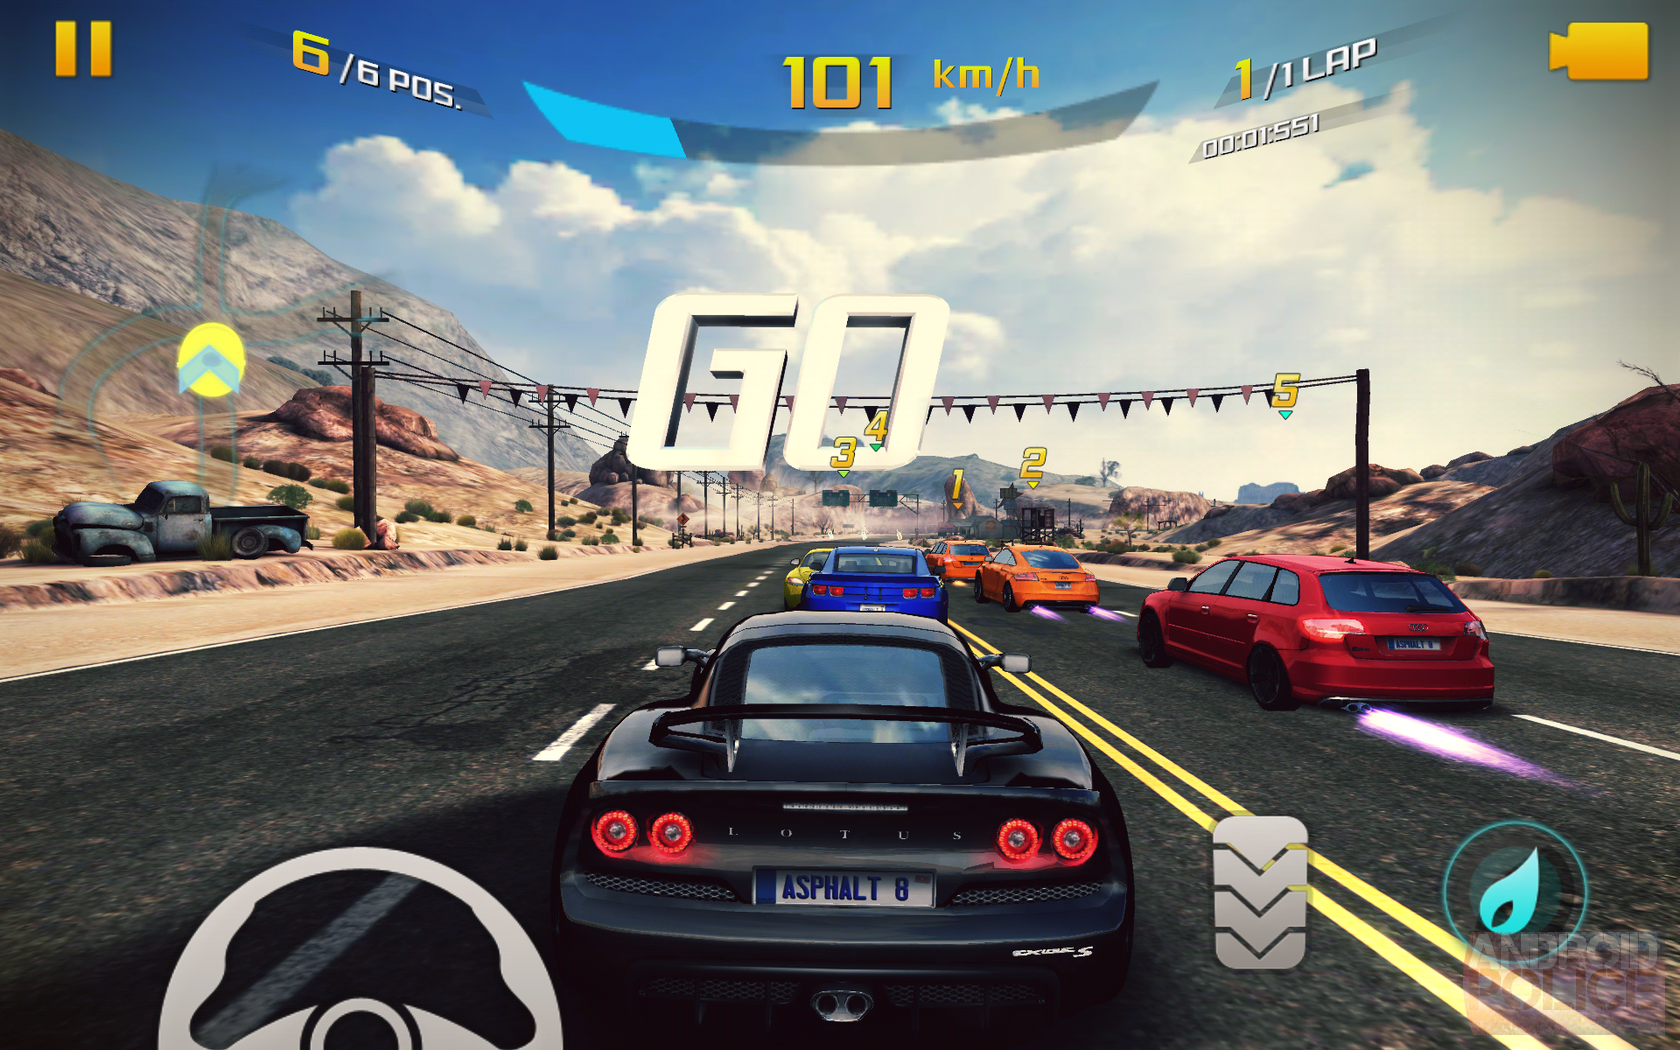 Asphalt 8 Game Wallpaper That Asphalt 8 Works With